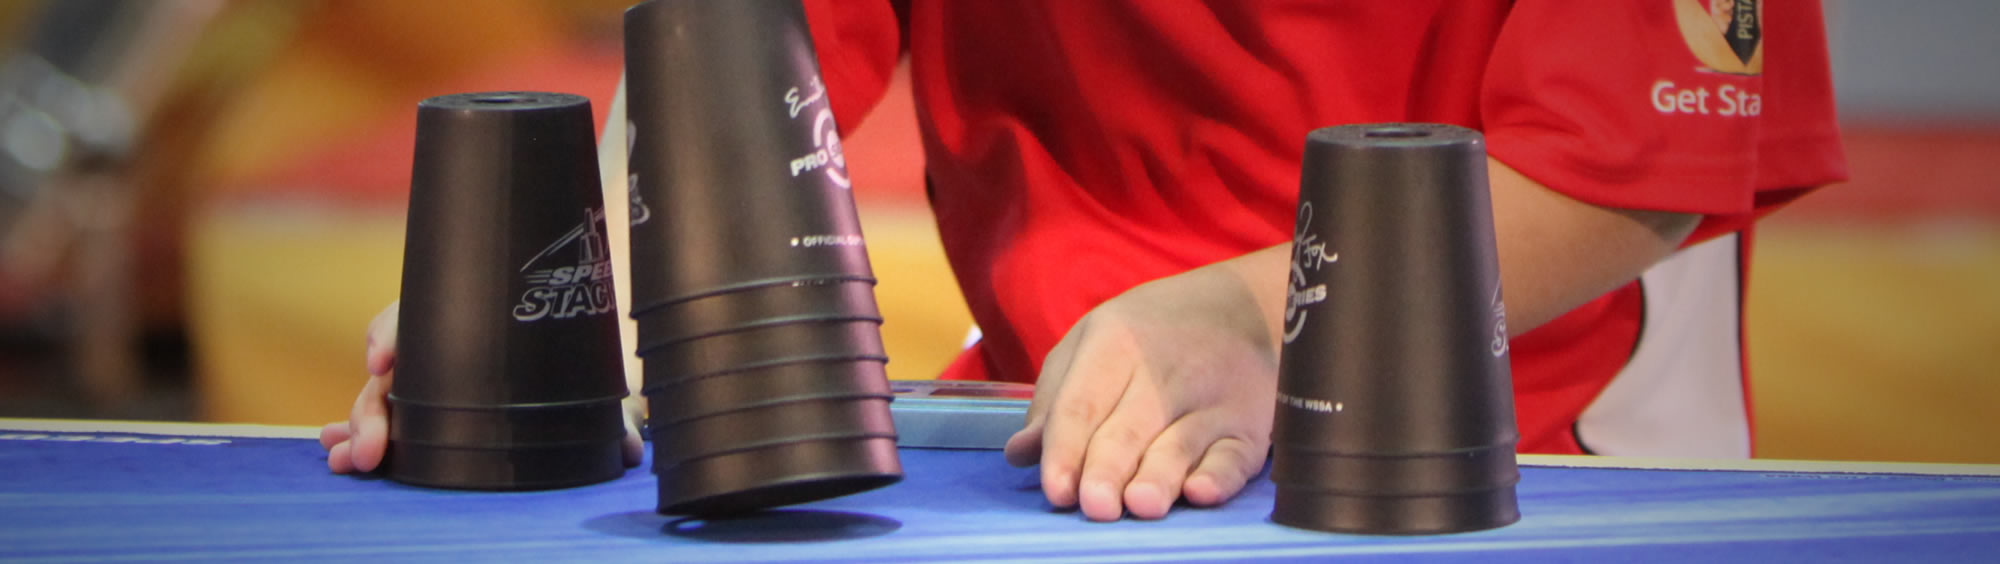 Sport Stacking Worldwide